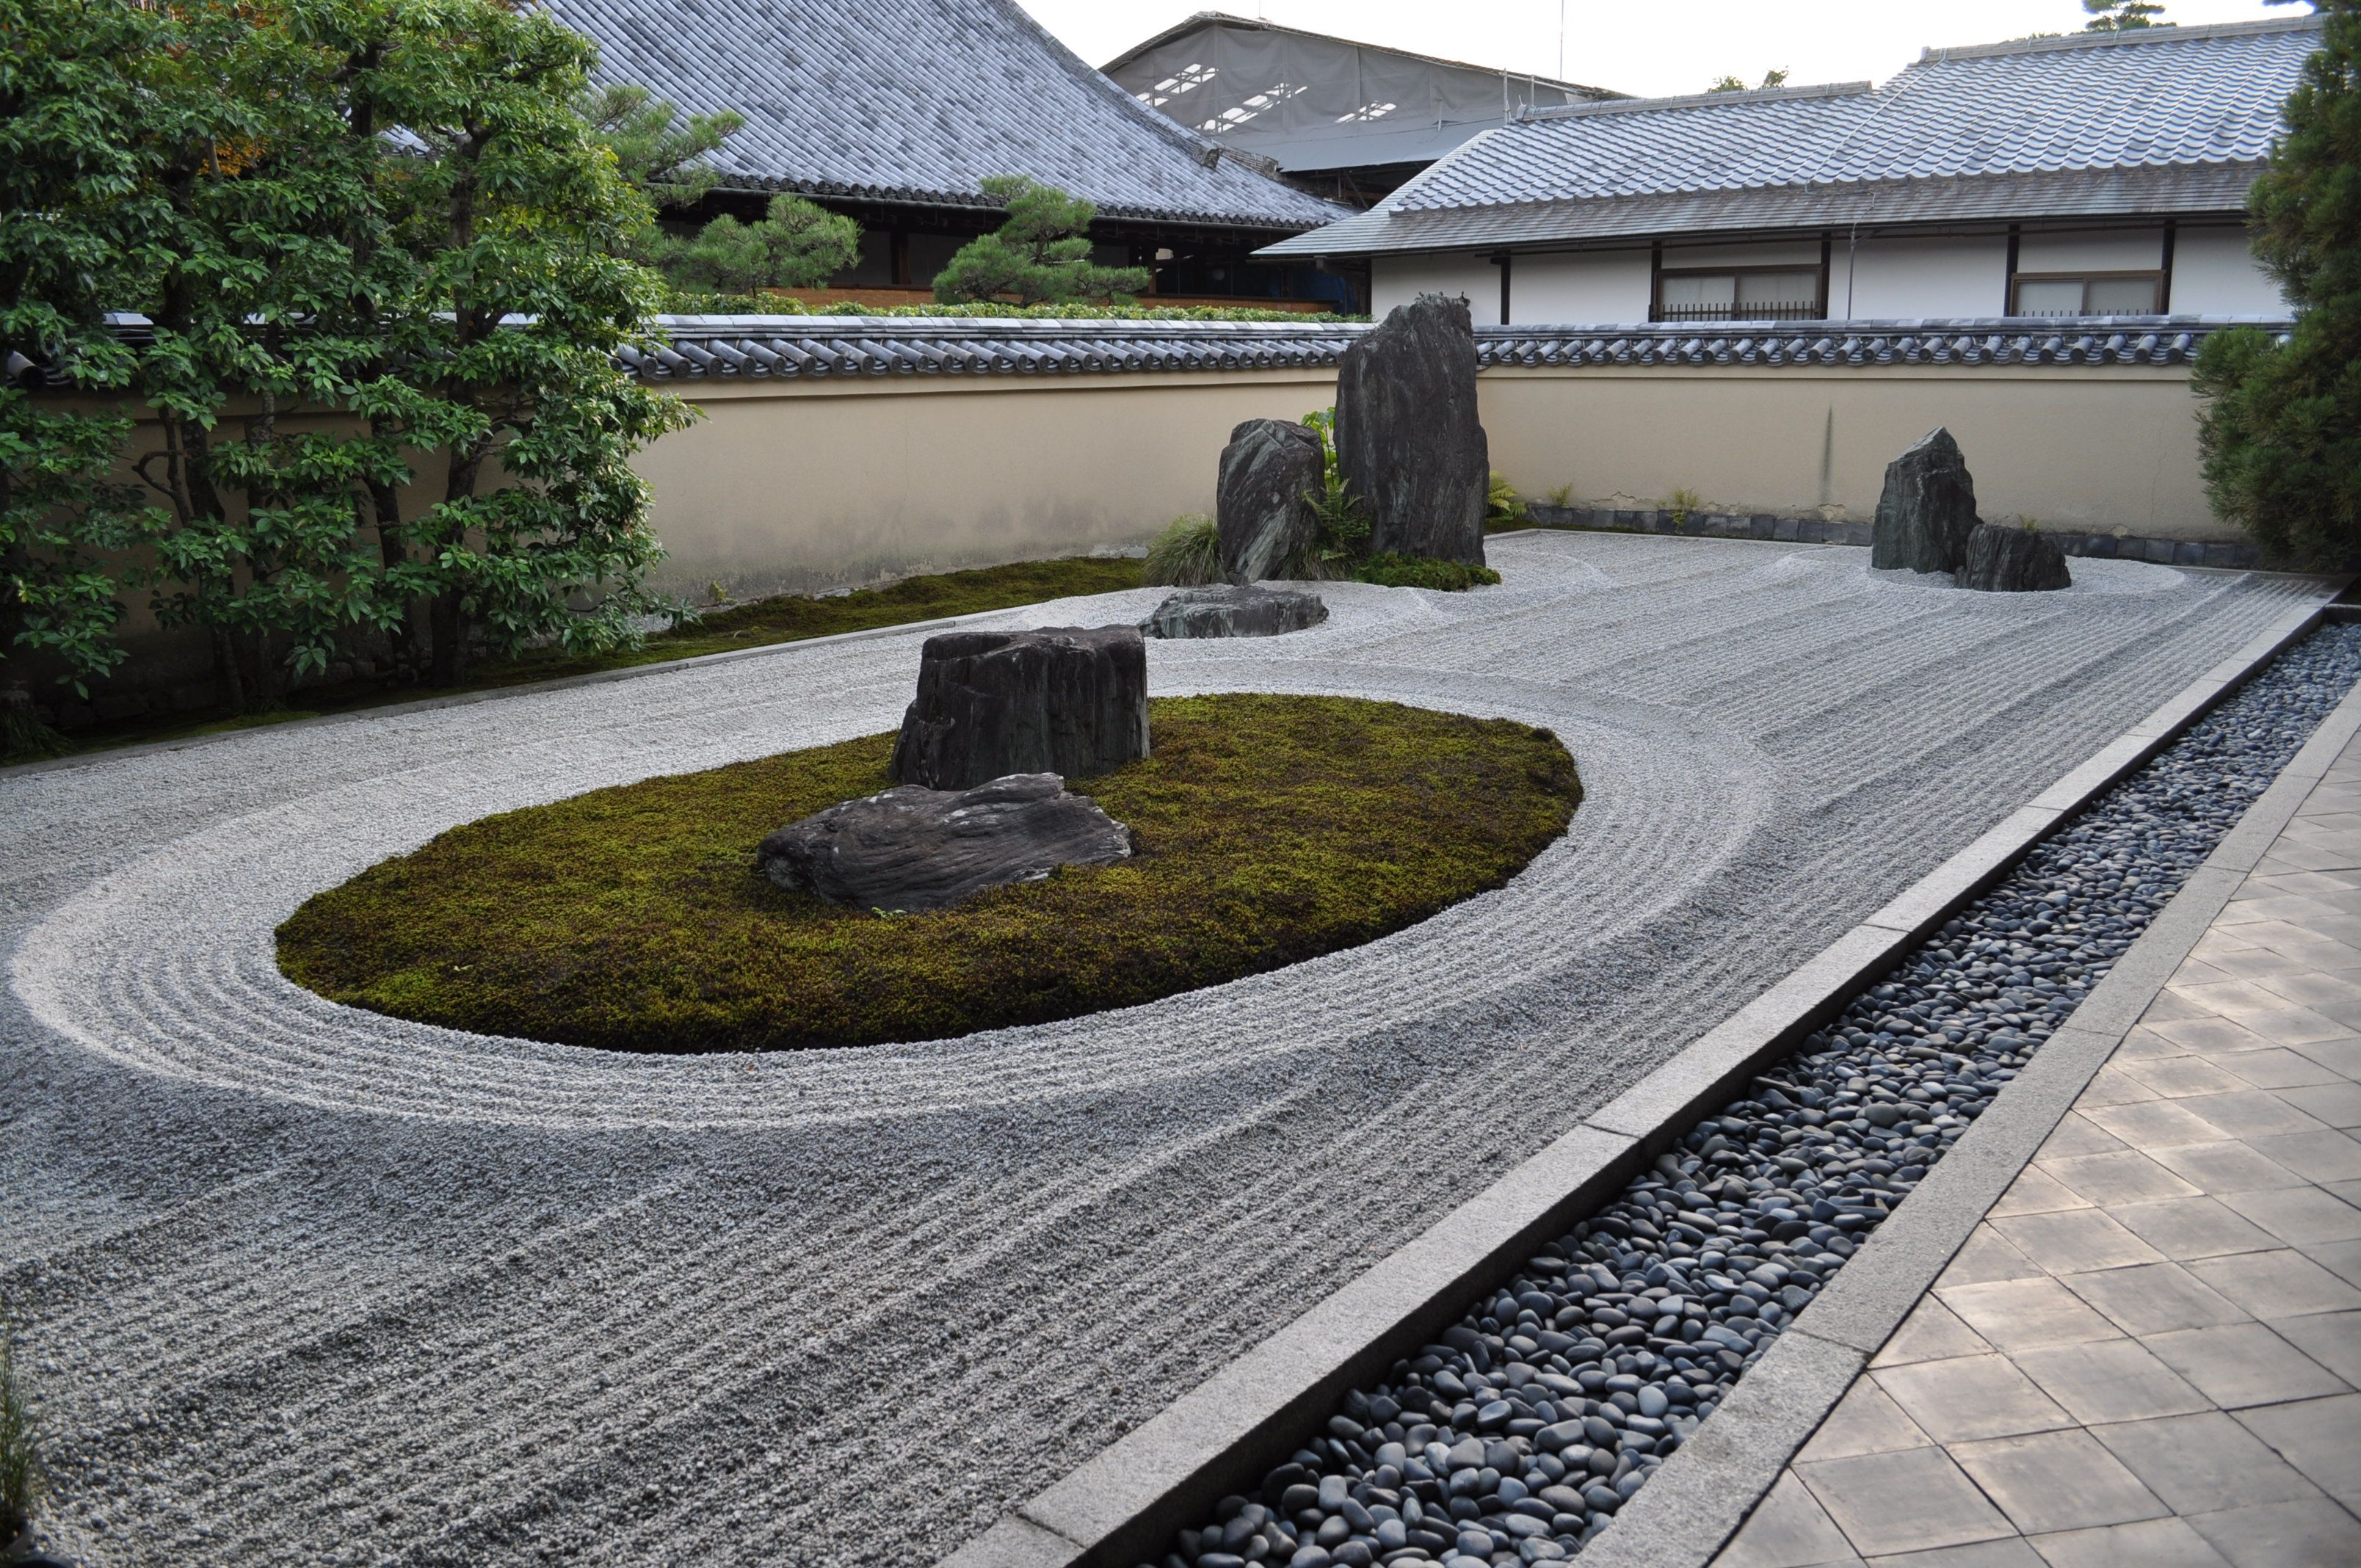 Japanese Rock Garden (karesansui) Is Often Called Zen Garden And Is A Garden  That Suggests Mountains And Water Using Only Stones, Sand, Gravel Or Plants.